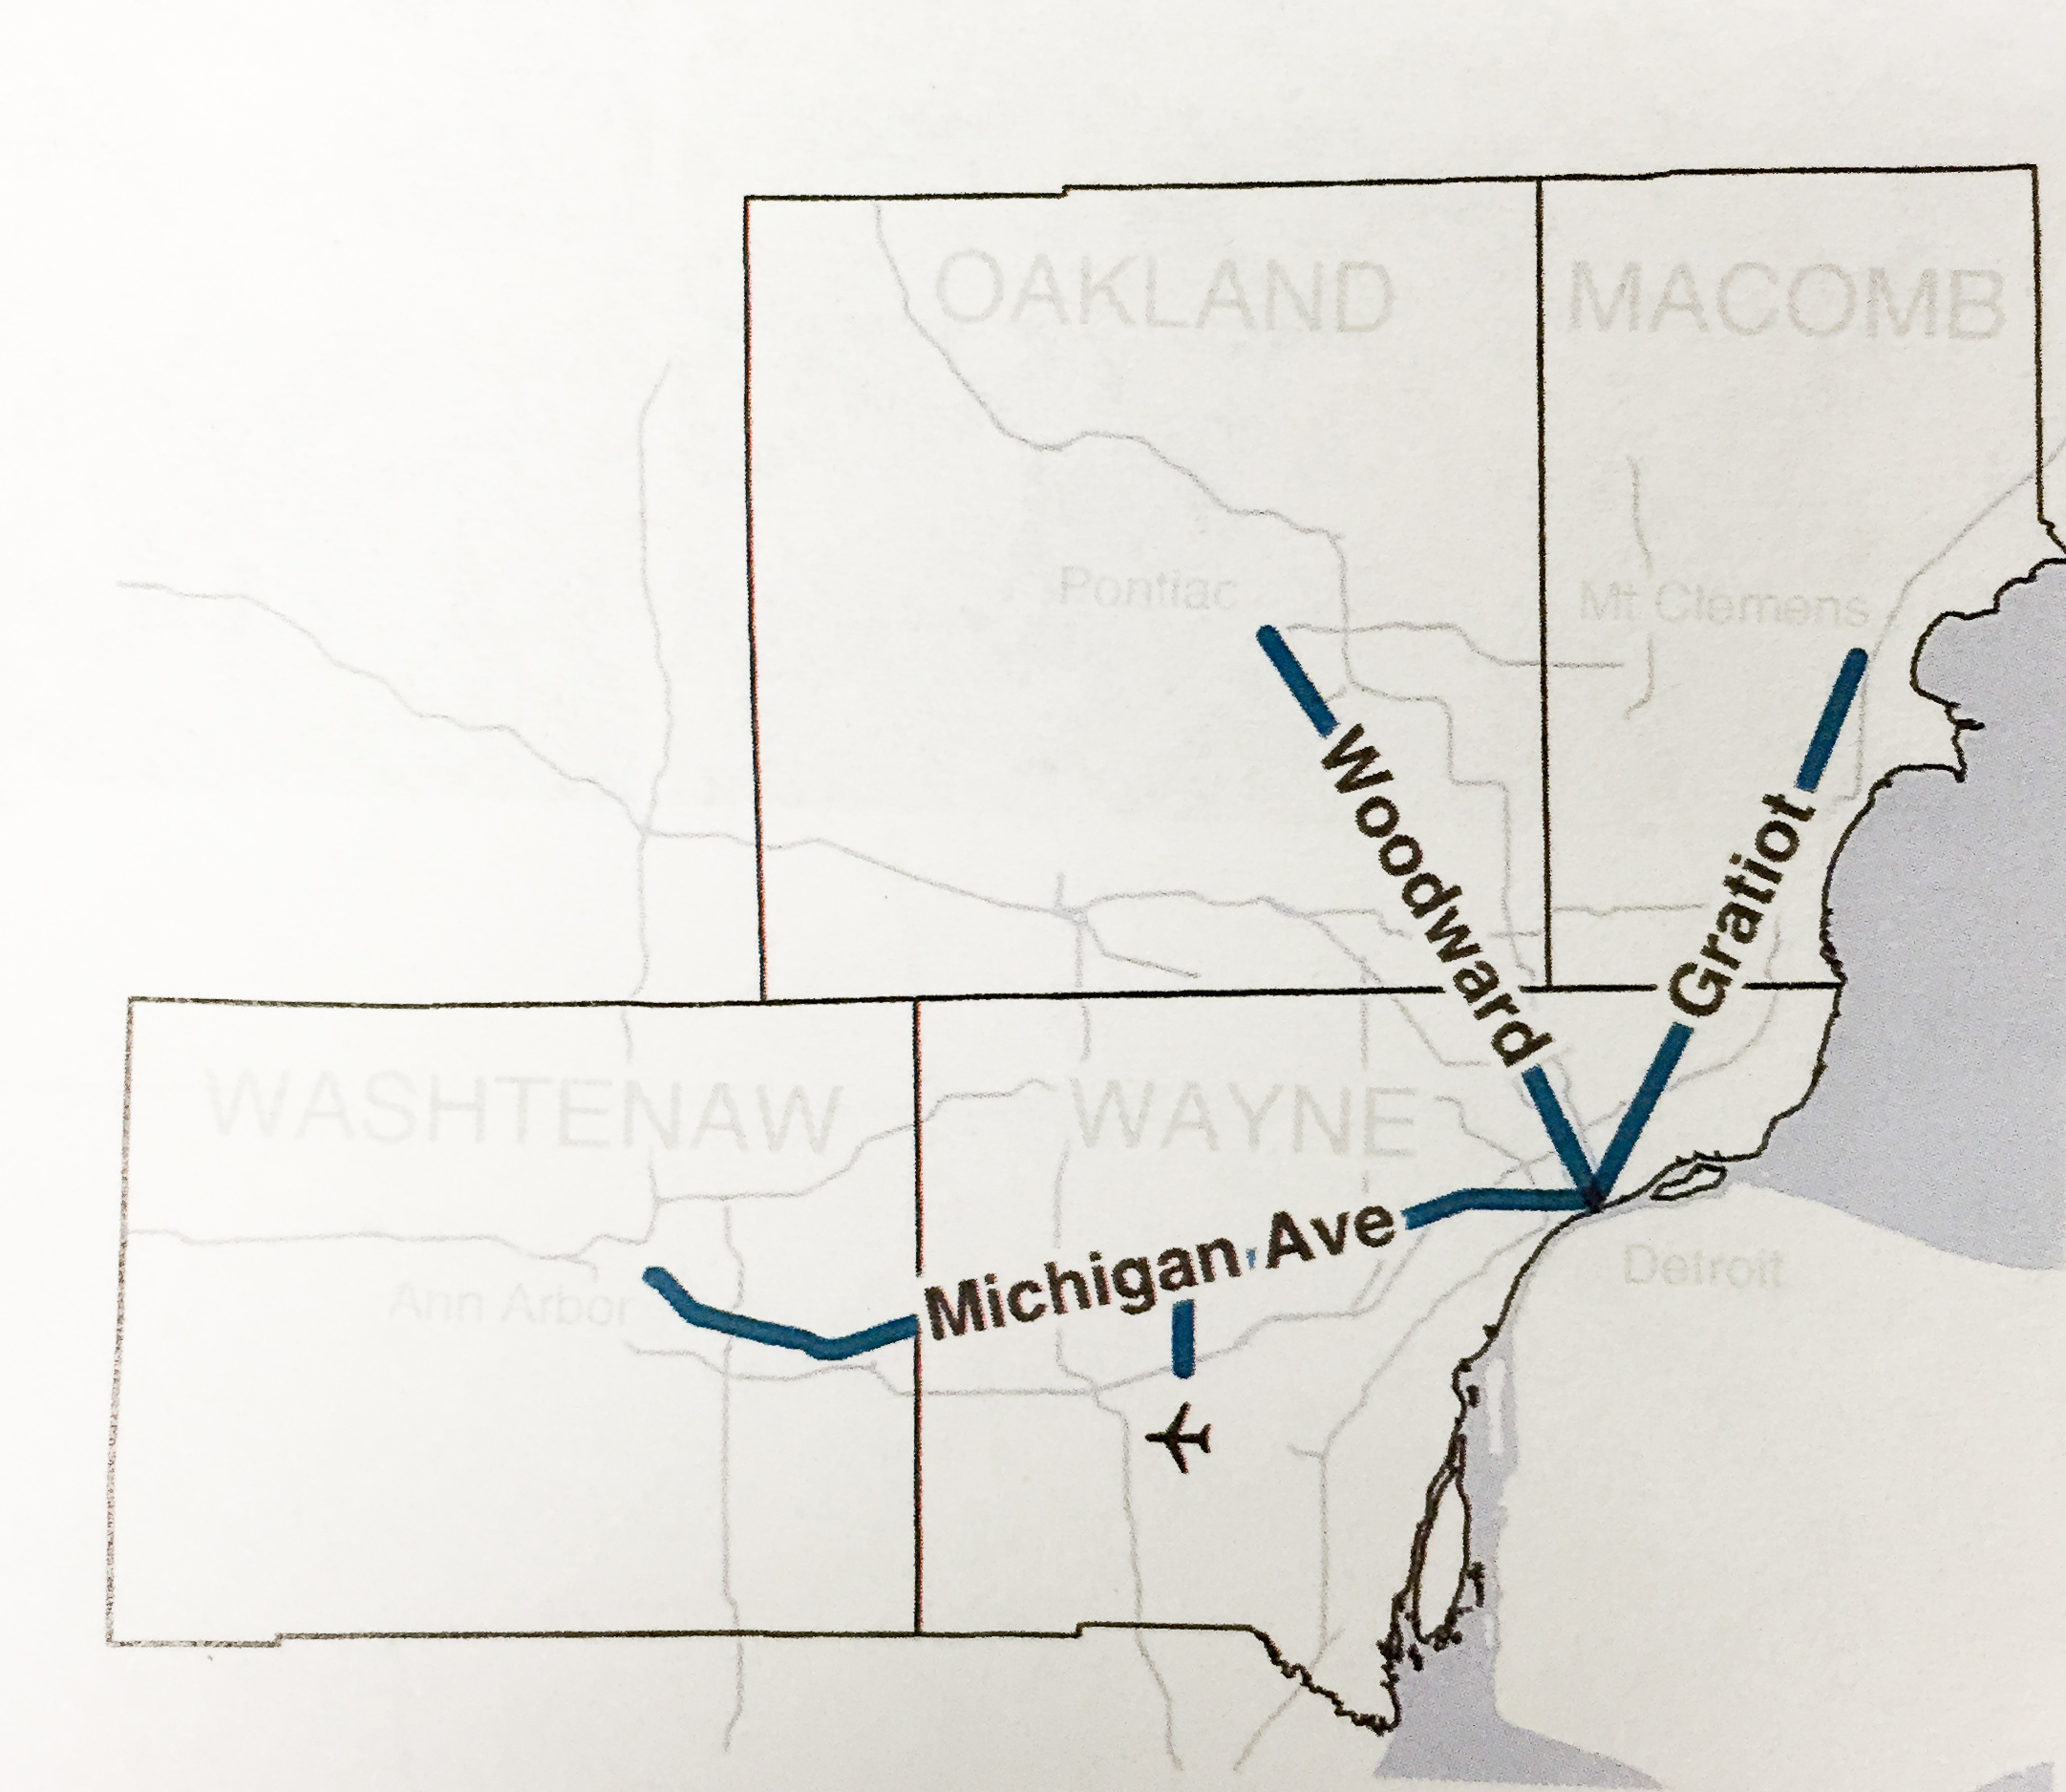 Southeast Michigan S Regional Transit Authority Working On